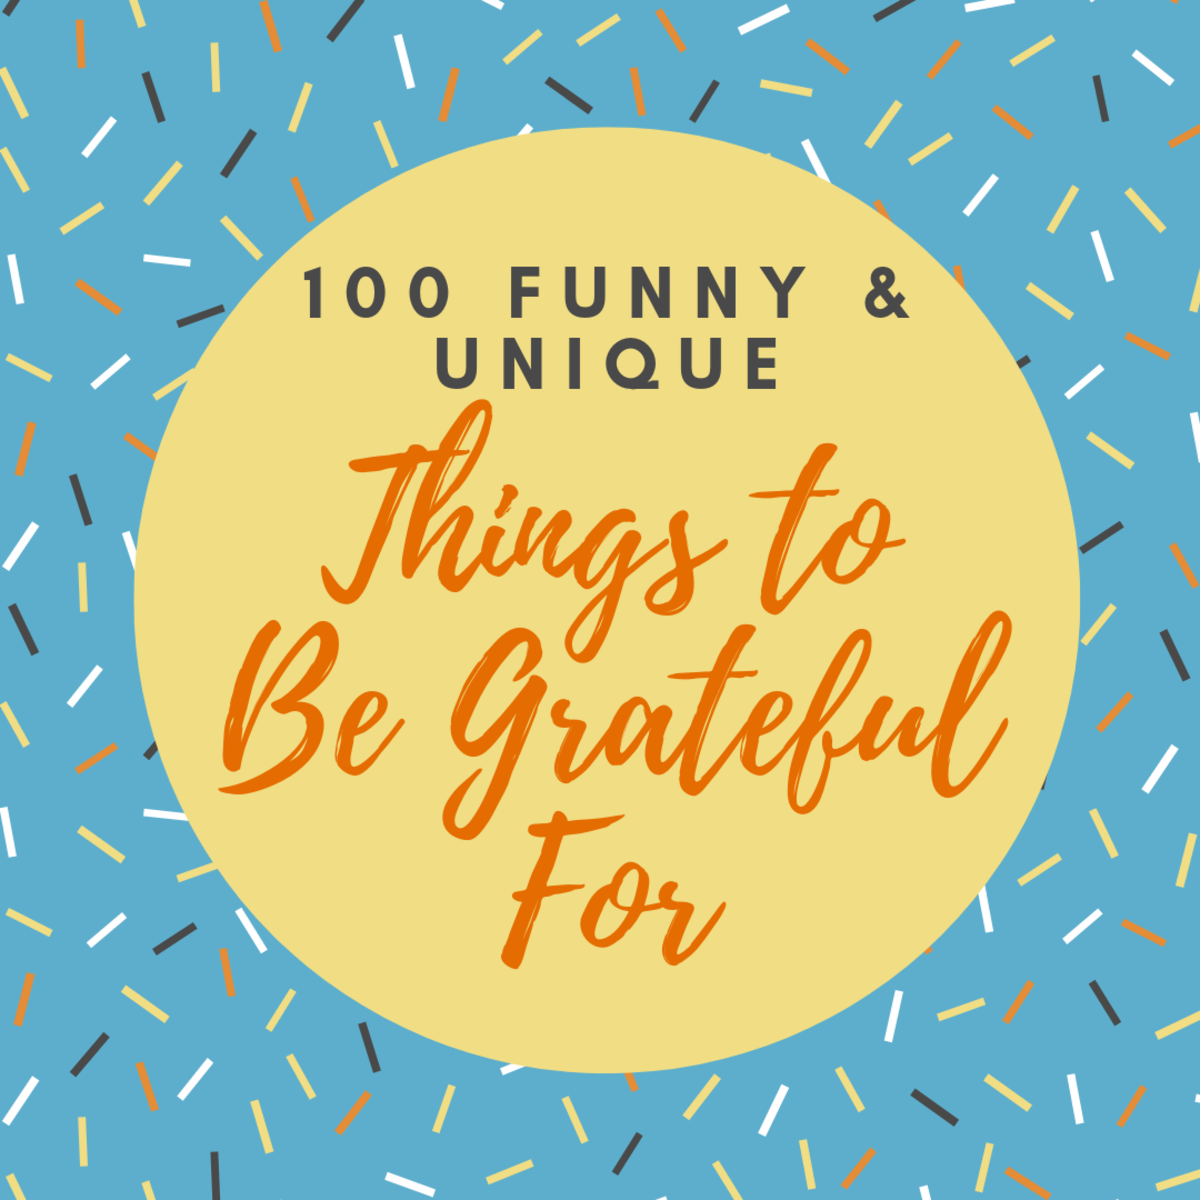 100 Funny Things to Be Thankful For